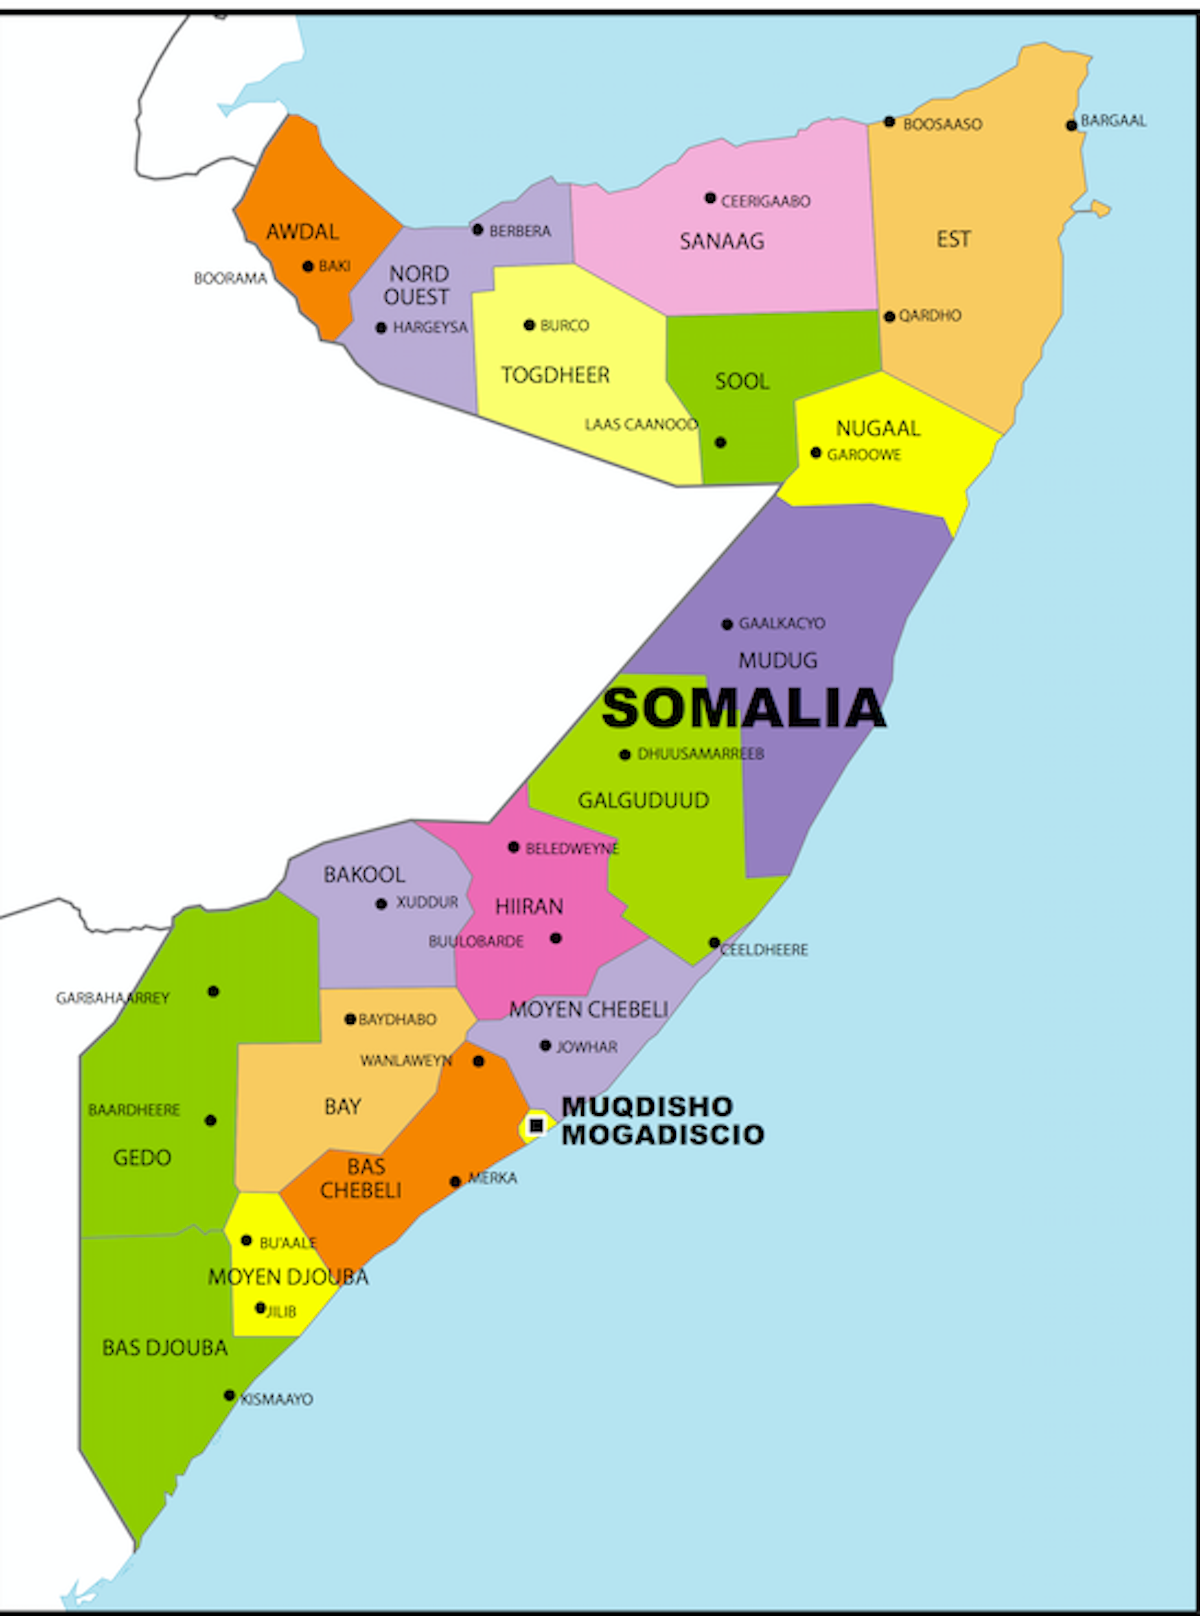 Political Map of Somalia showing the eighteen regions of the country, their capitals, and the national capital of Mogadishu.